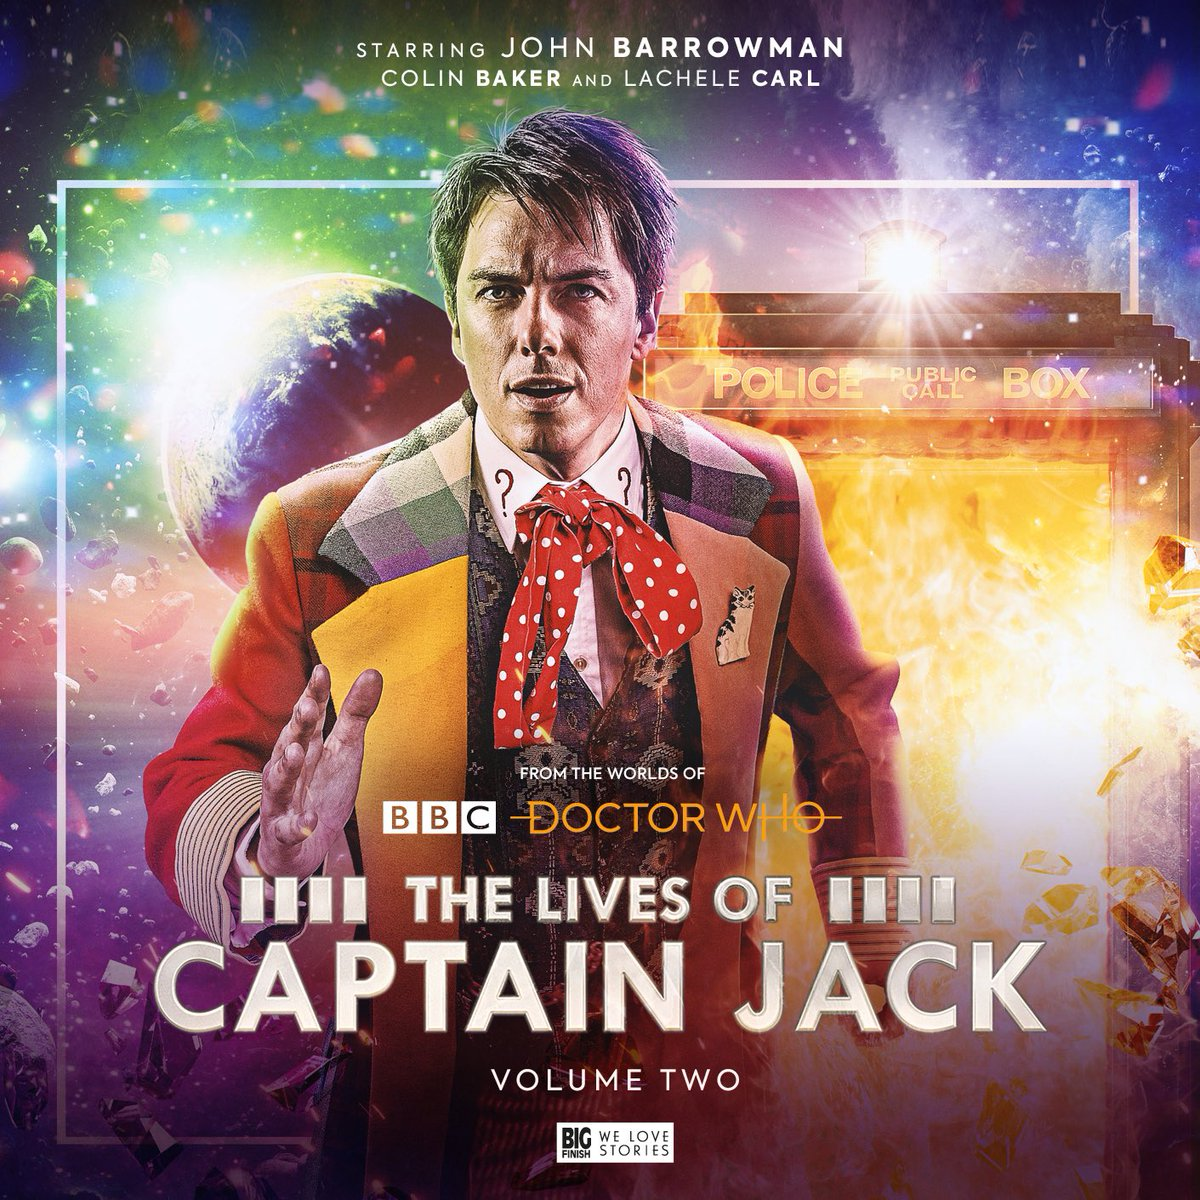 John Barrowman is ridiculous and that makes me love him even